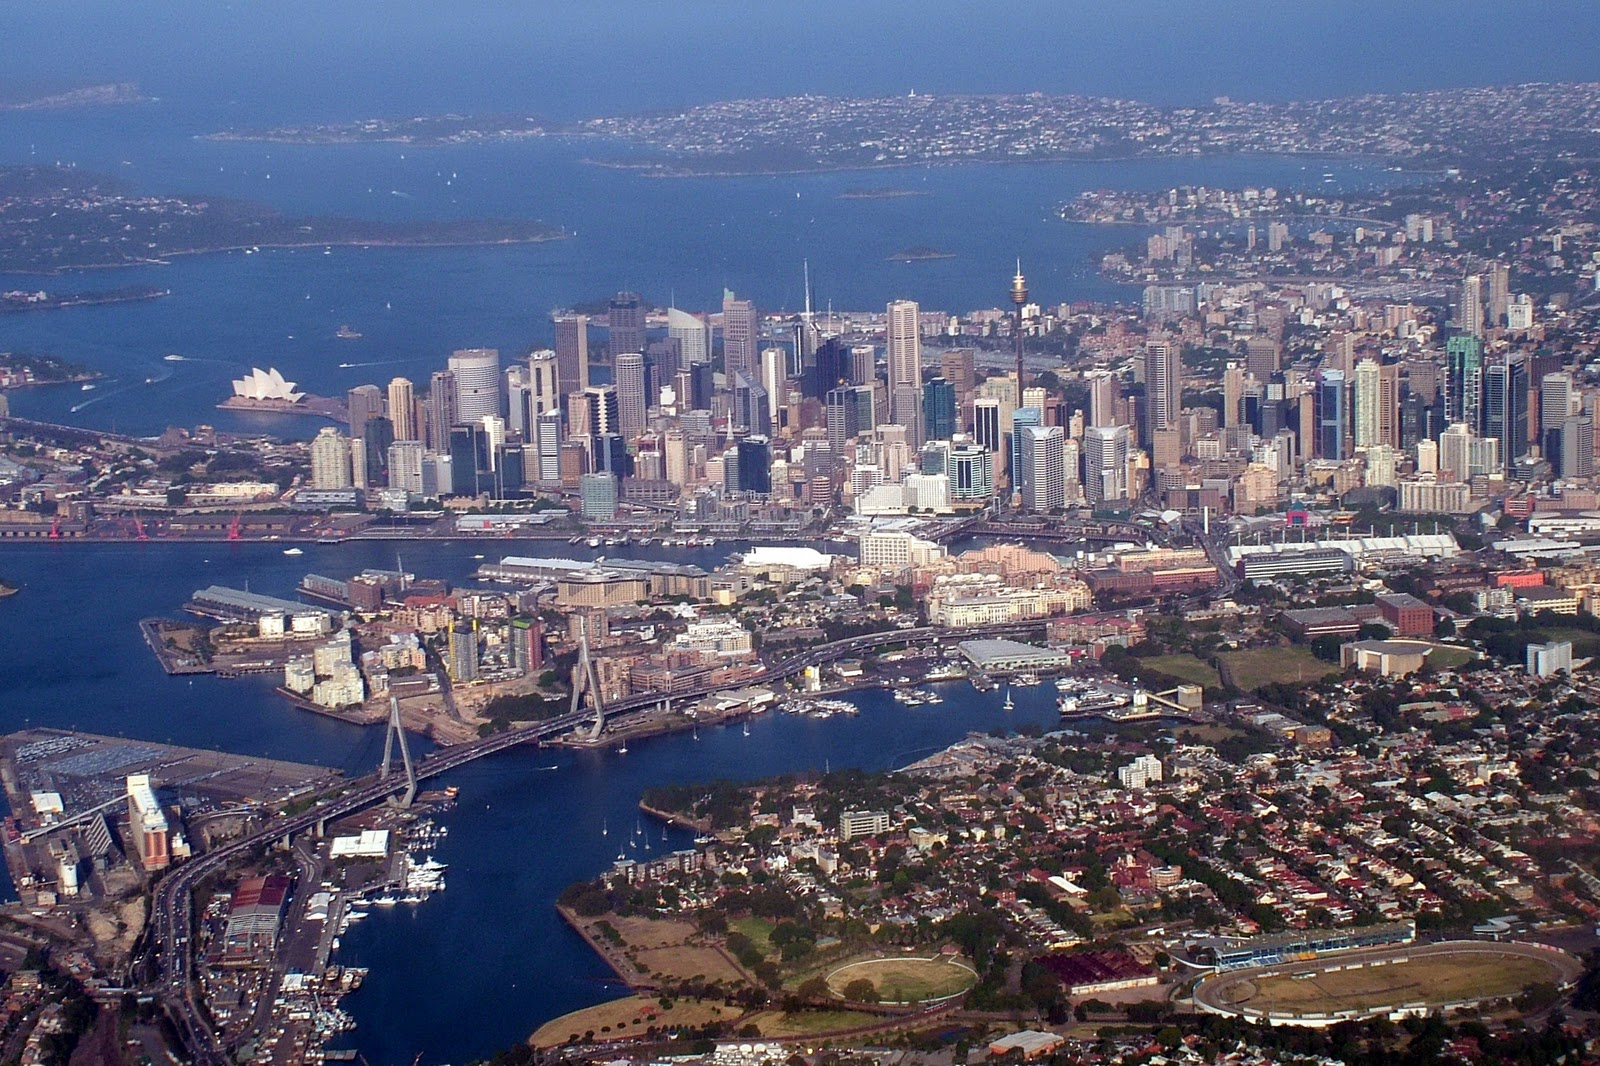 Urban Research: Skyline photos of Sydney, Australia 1